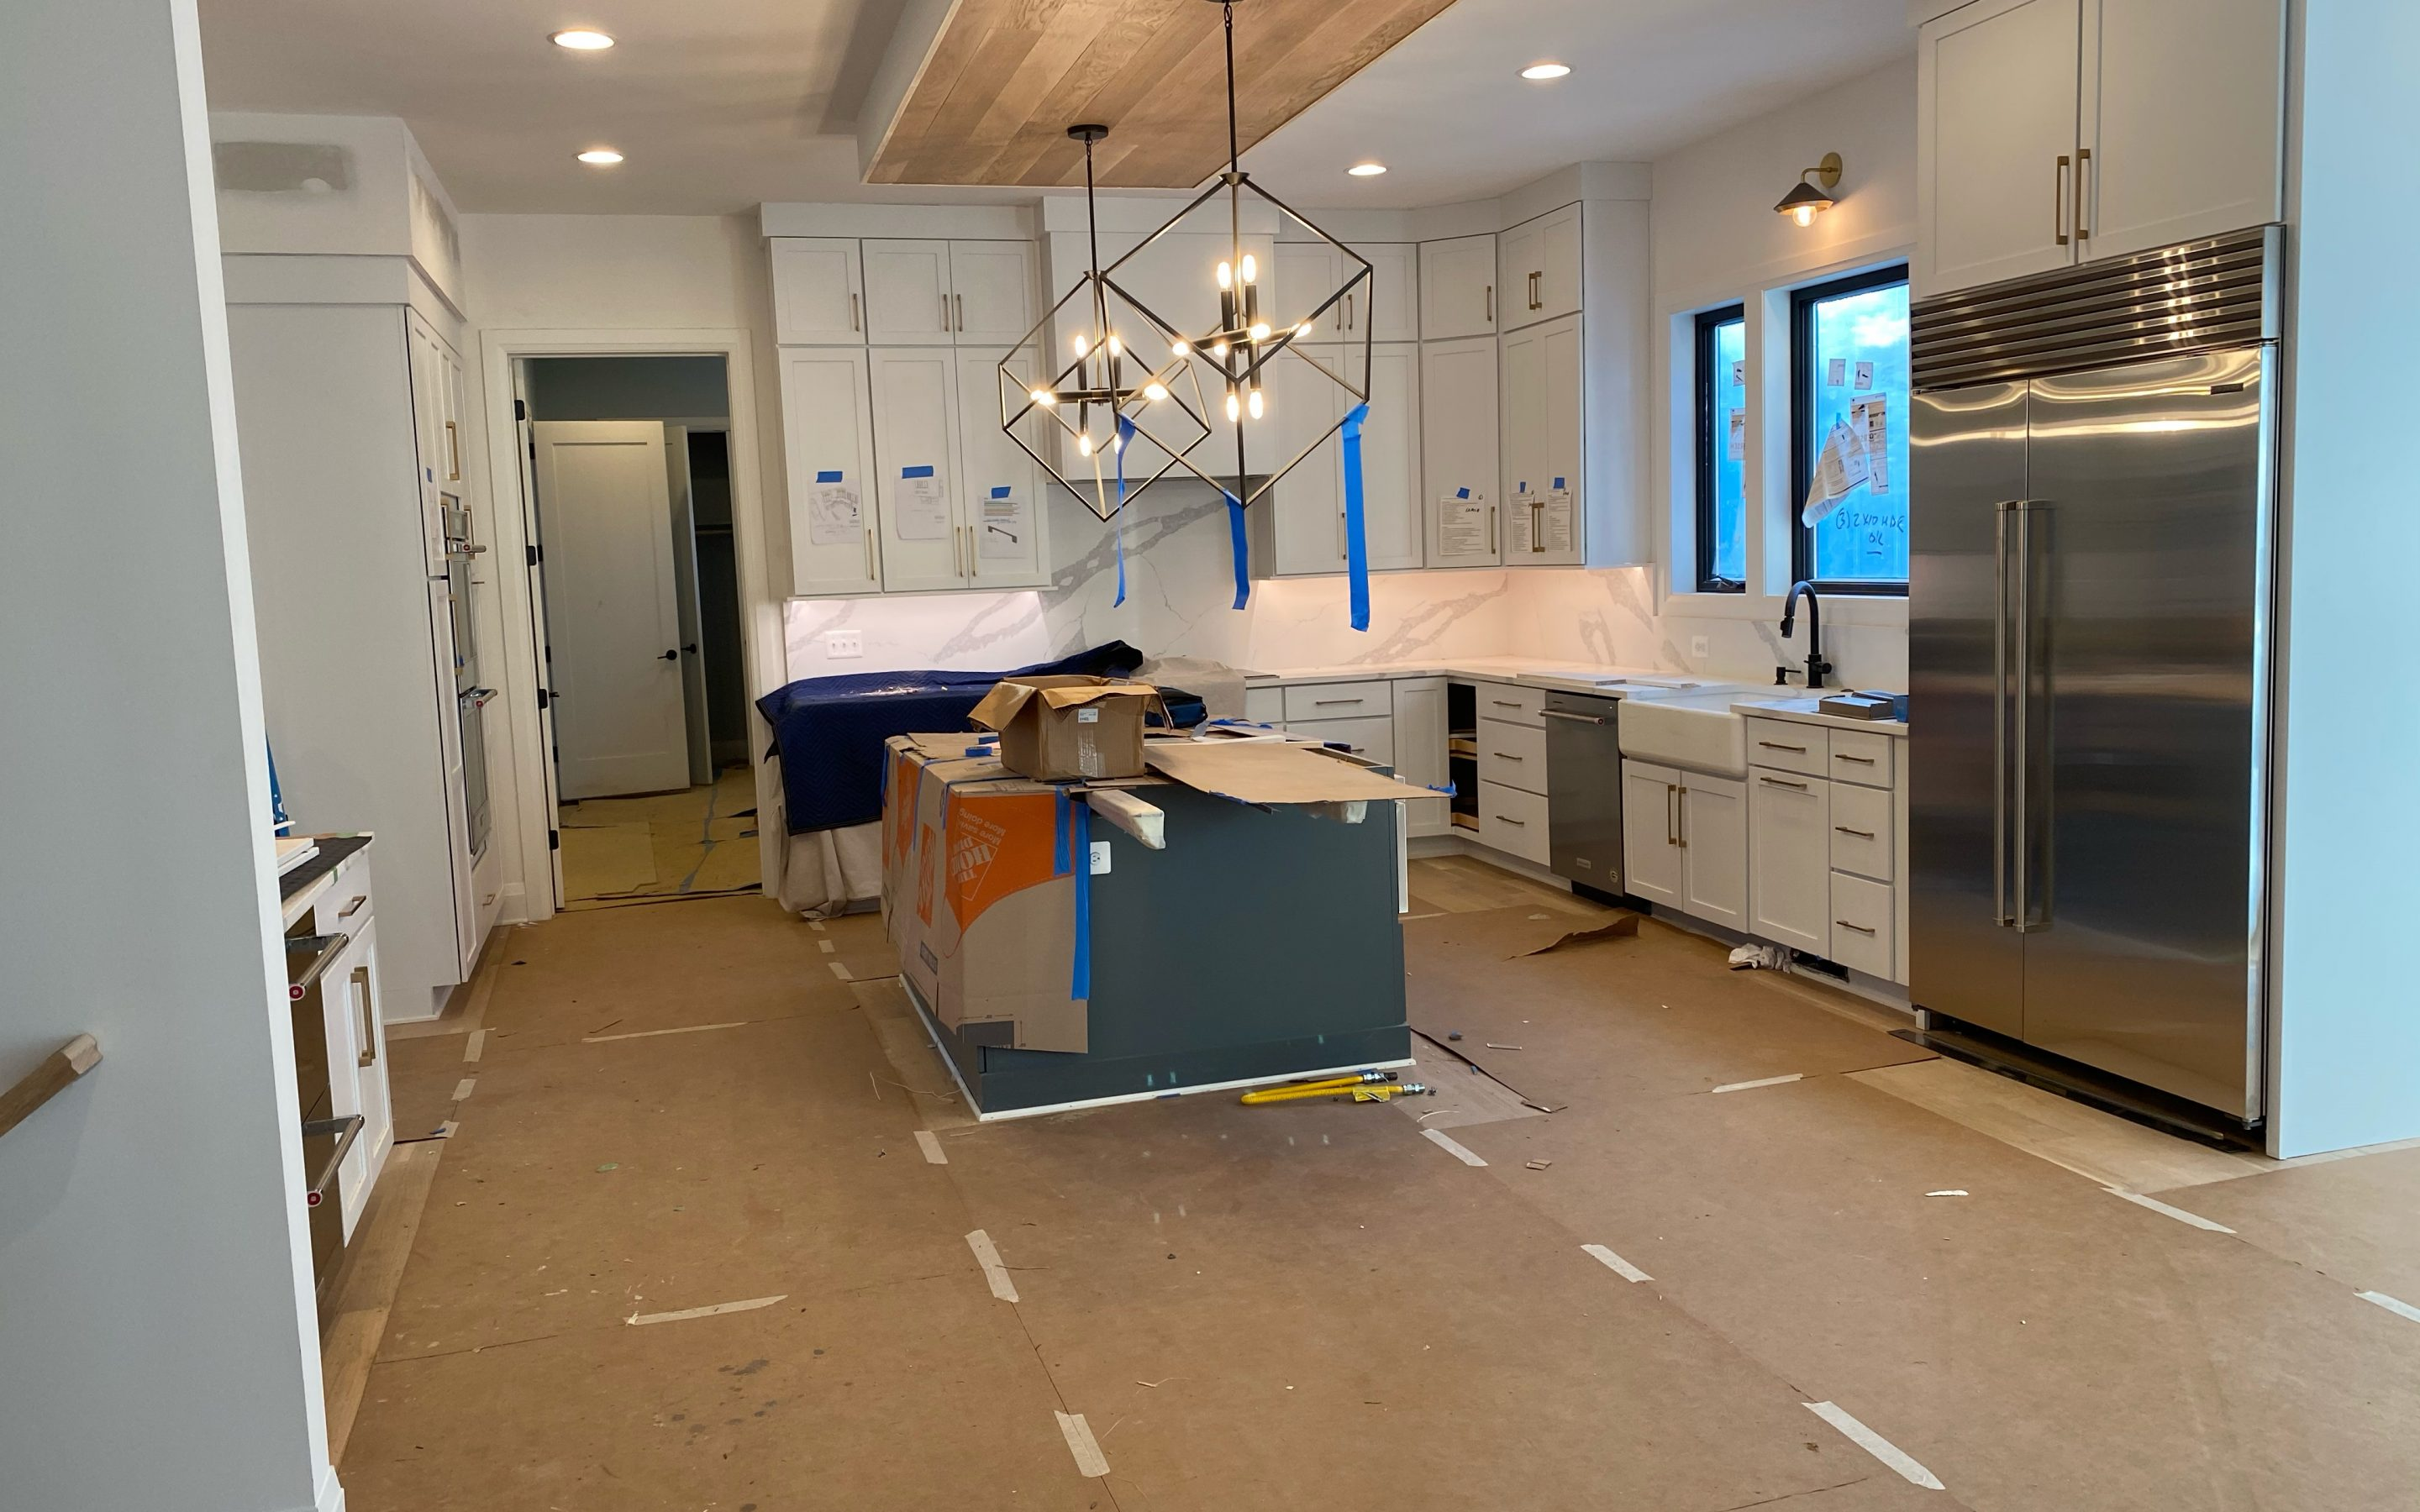 3 Things to Do Before Your Home Renovation Project Begins